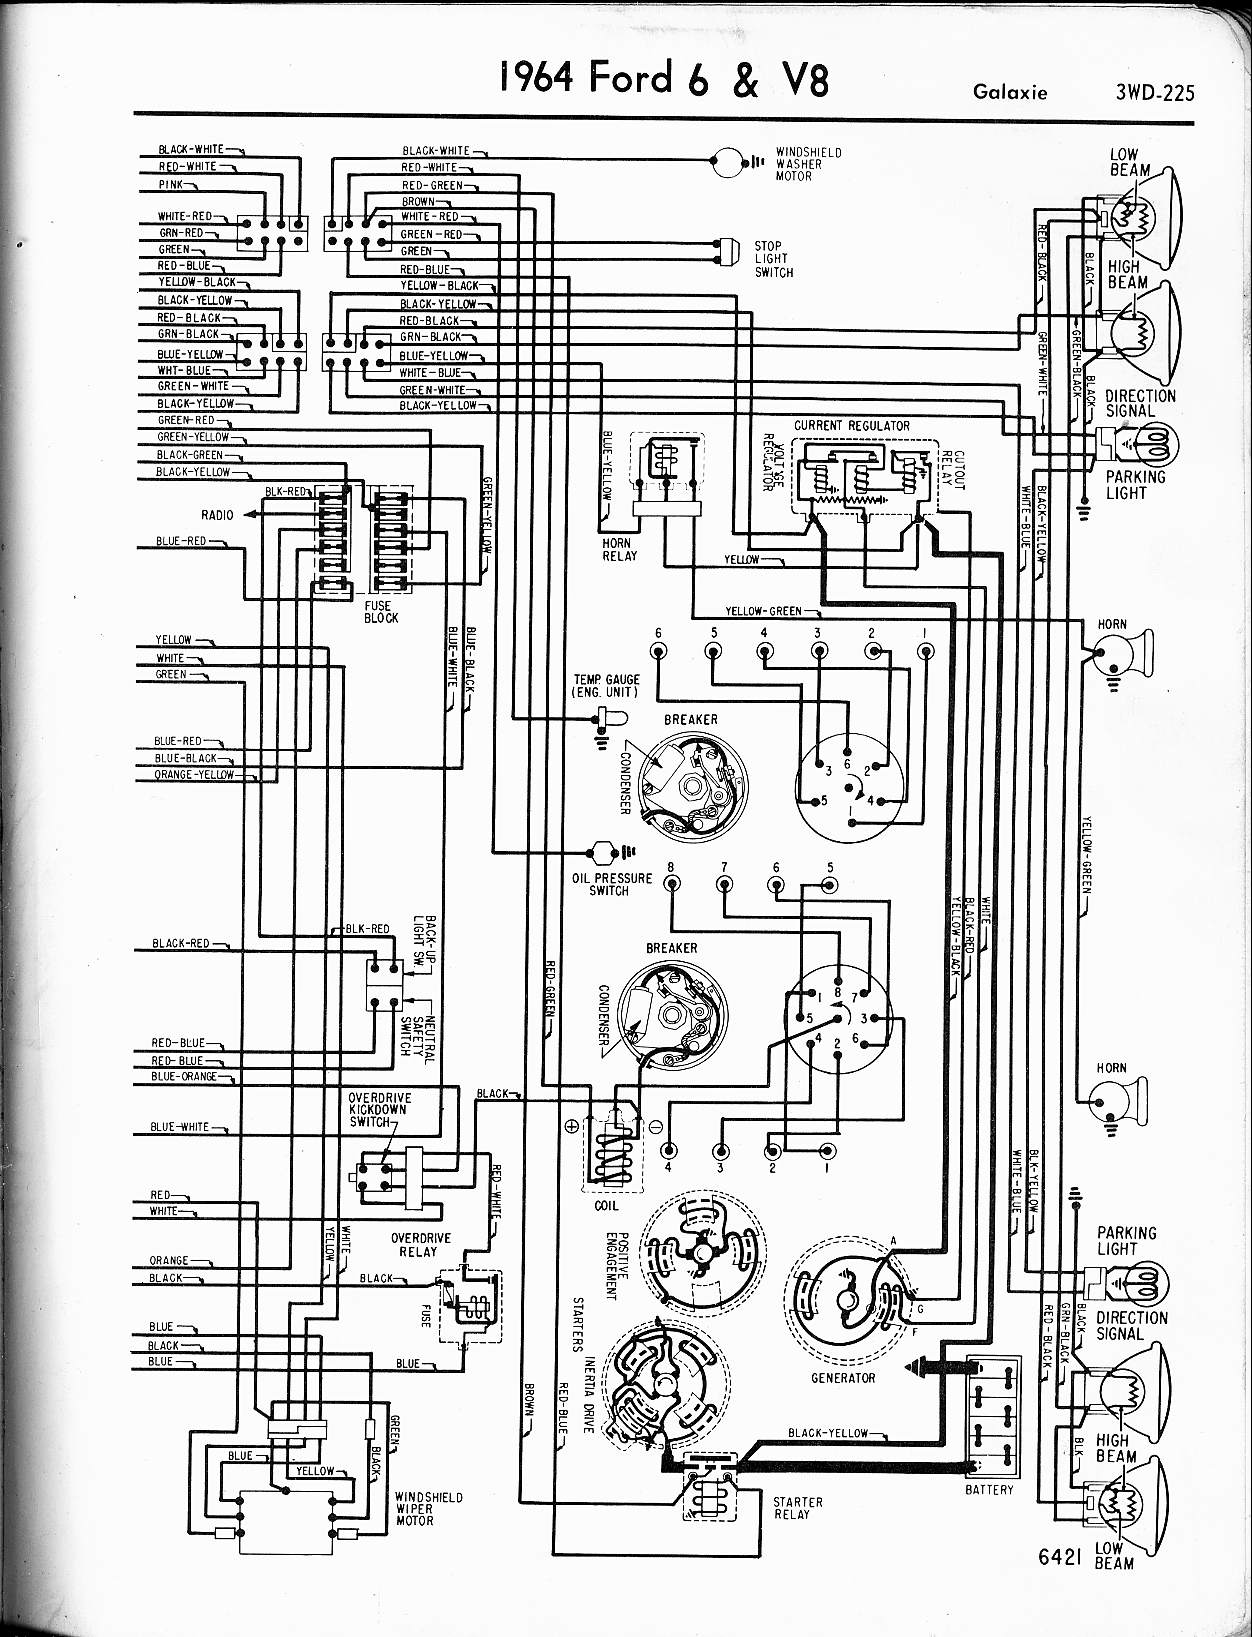 1964 galaxie fuse box schematic diagrams 1996 F250 Fuse Box Diagram 1964 galaxie dash diagram wiring diagrams schema 1964 galaxie lightweight 1964 galaxie fuse box